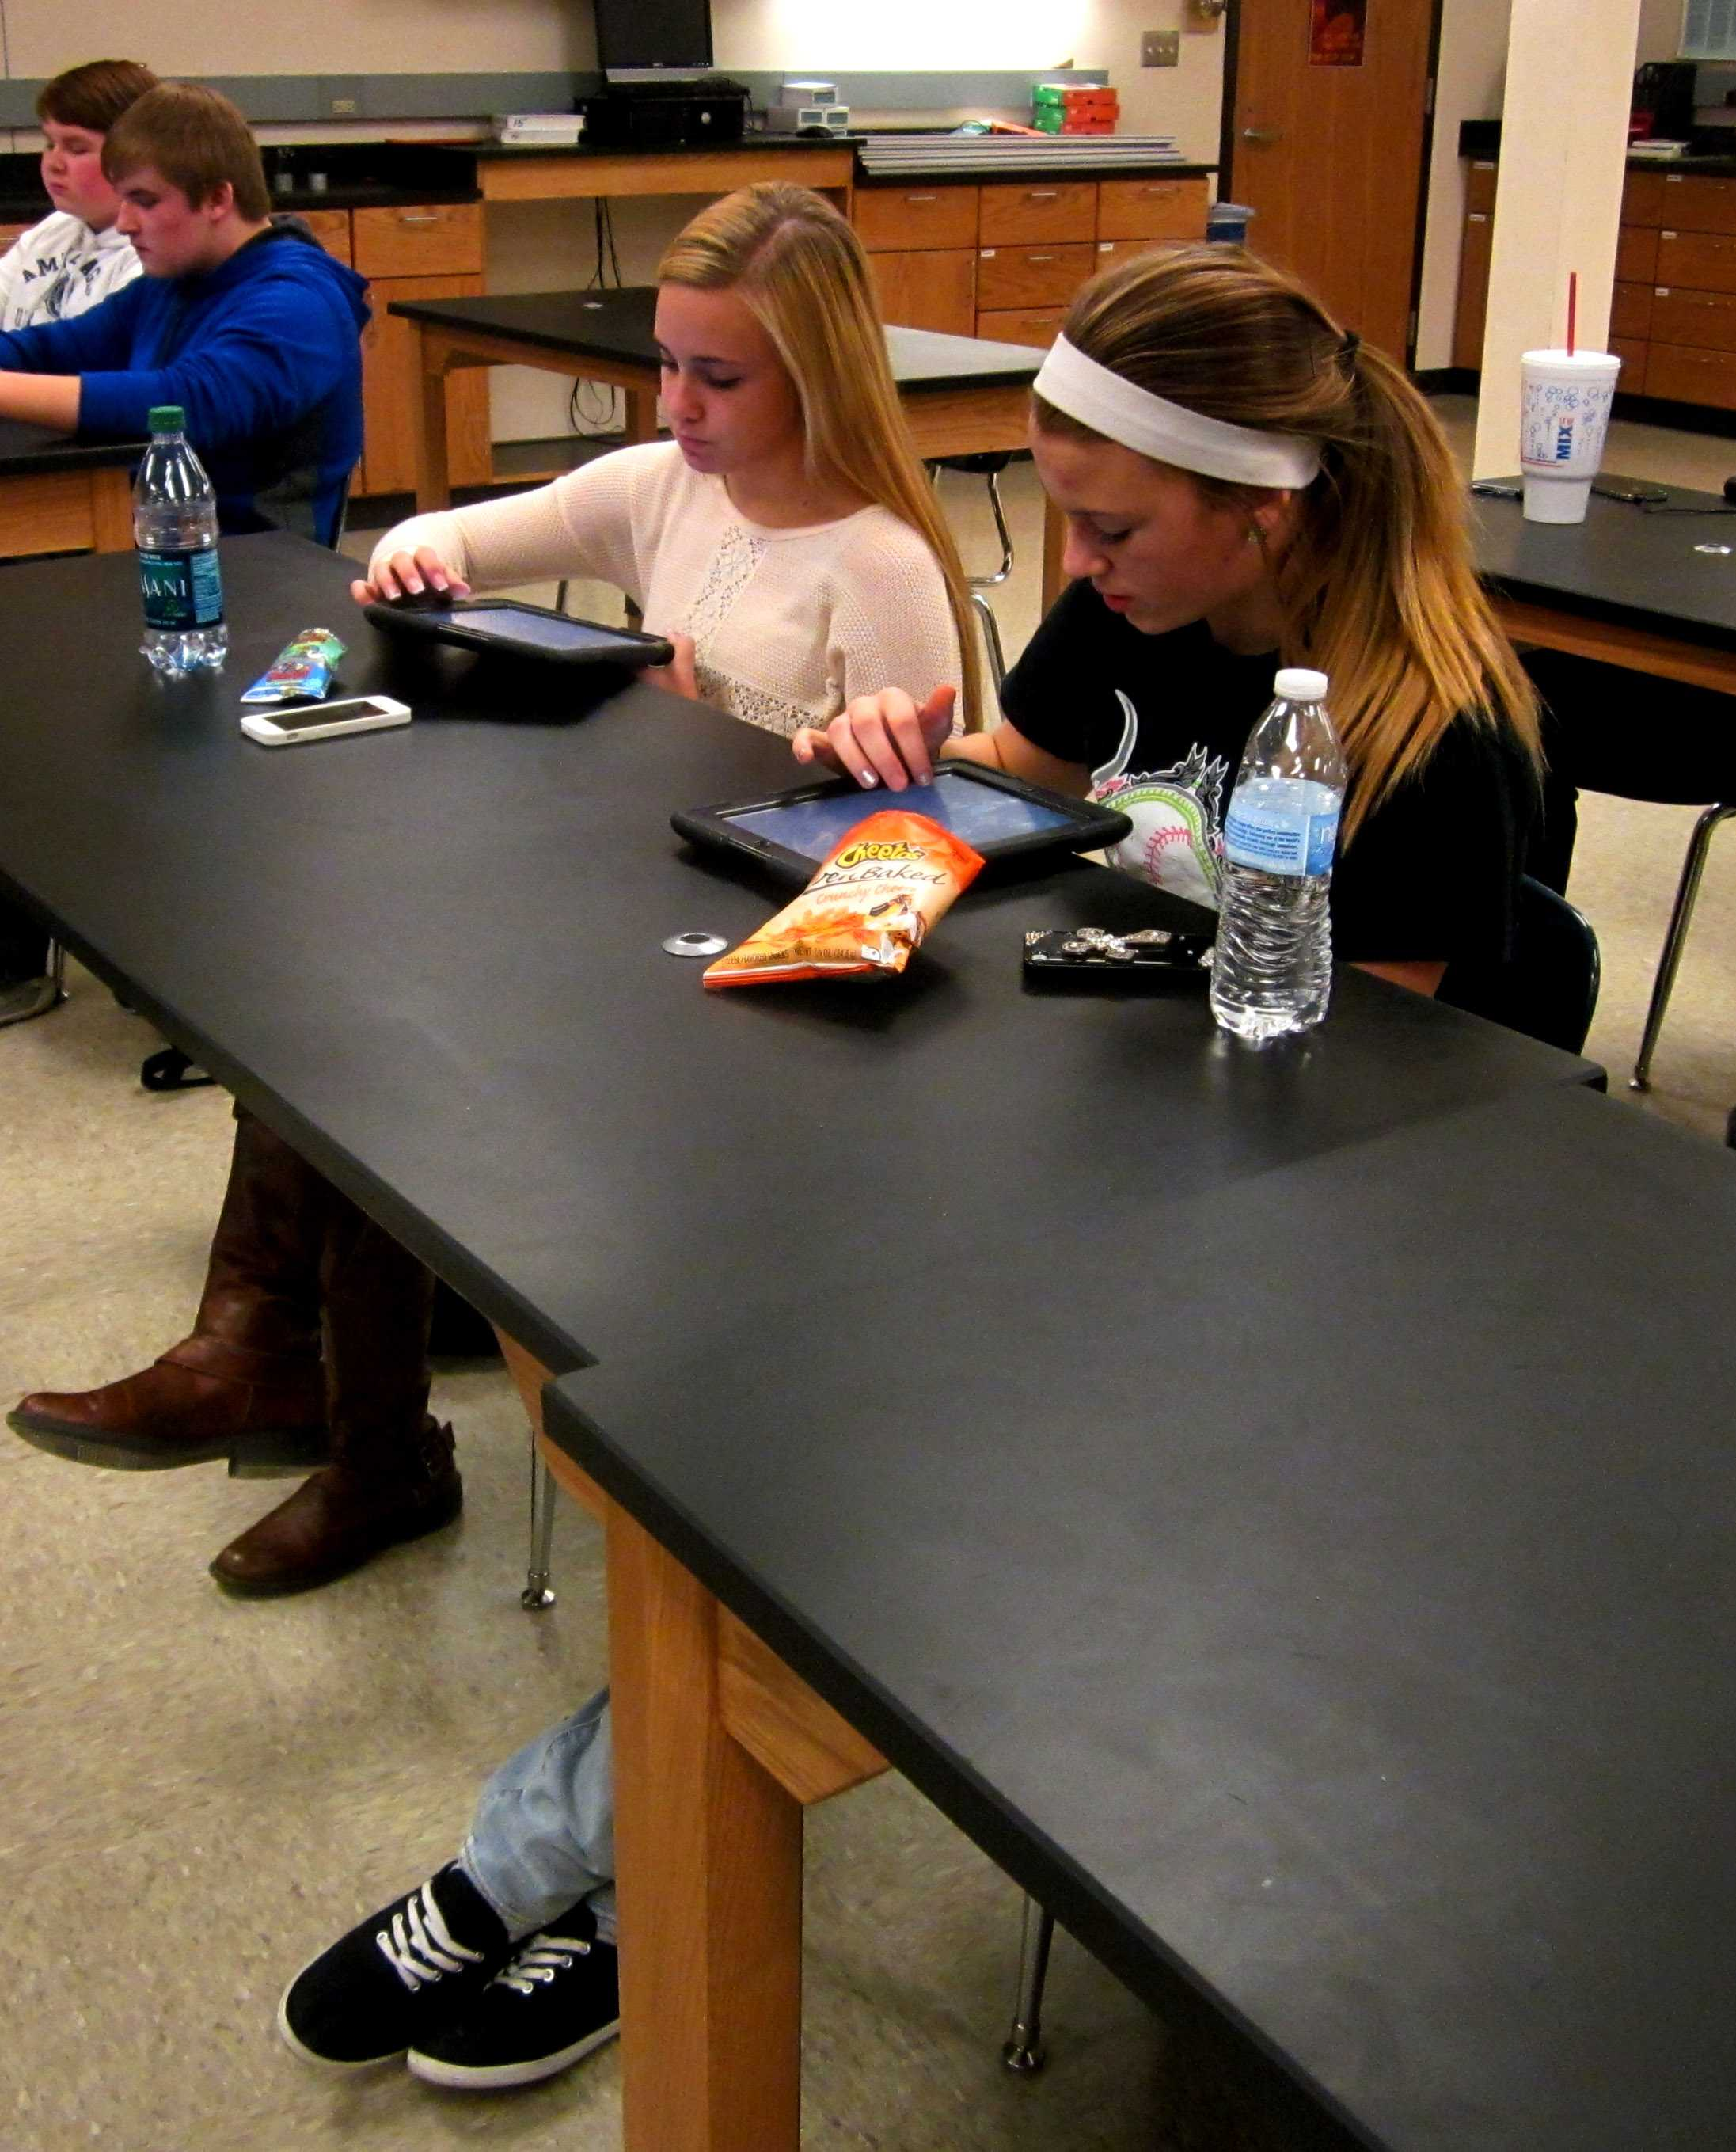 Juniors Payton Reynolds and Nicole Robinett work together on an assignment using their iPads.